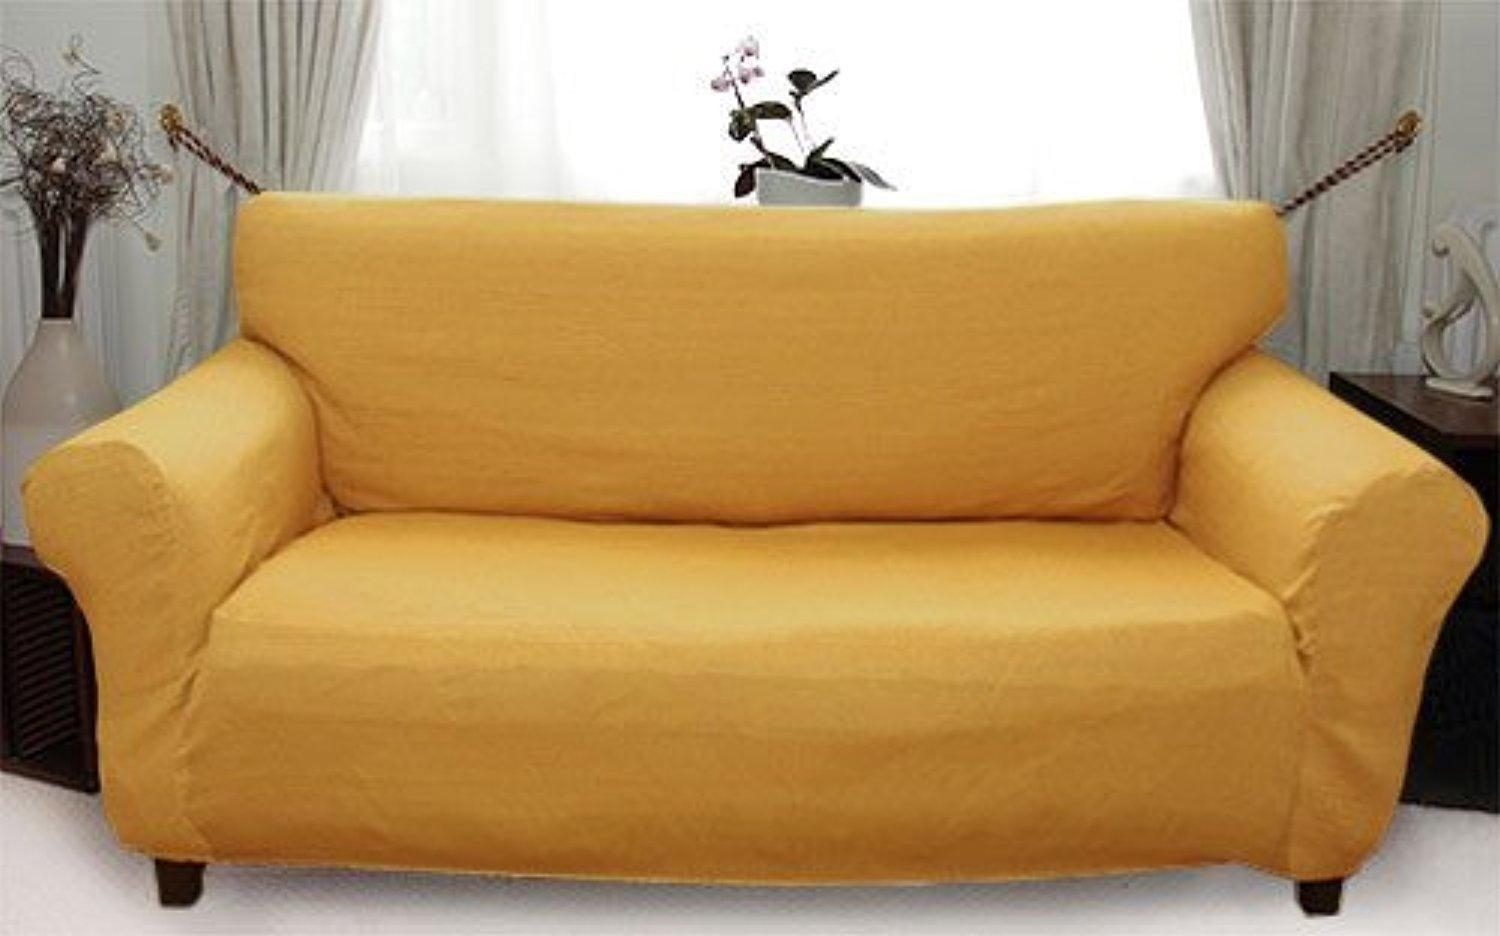 Sofa Covers Uk Stretch | Centerfieldbar Inside Sofa Settee Covers (View 17 of 22)